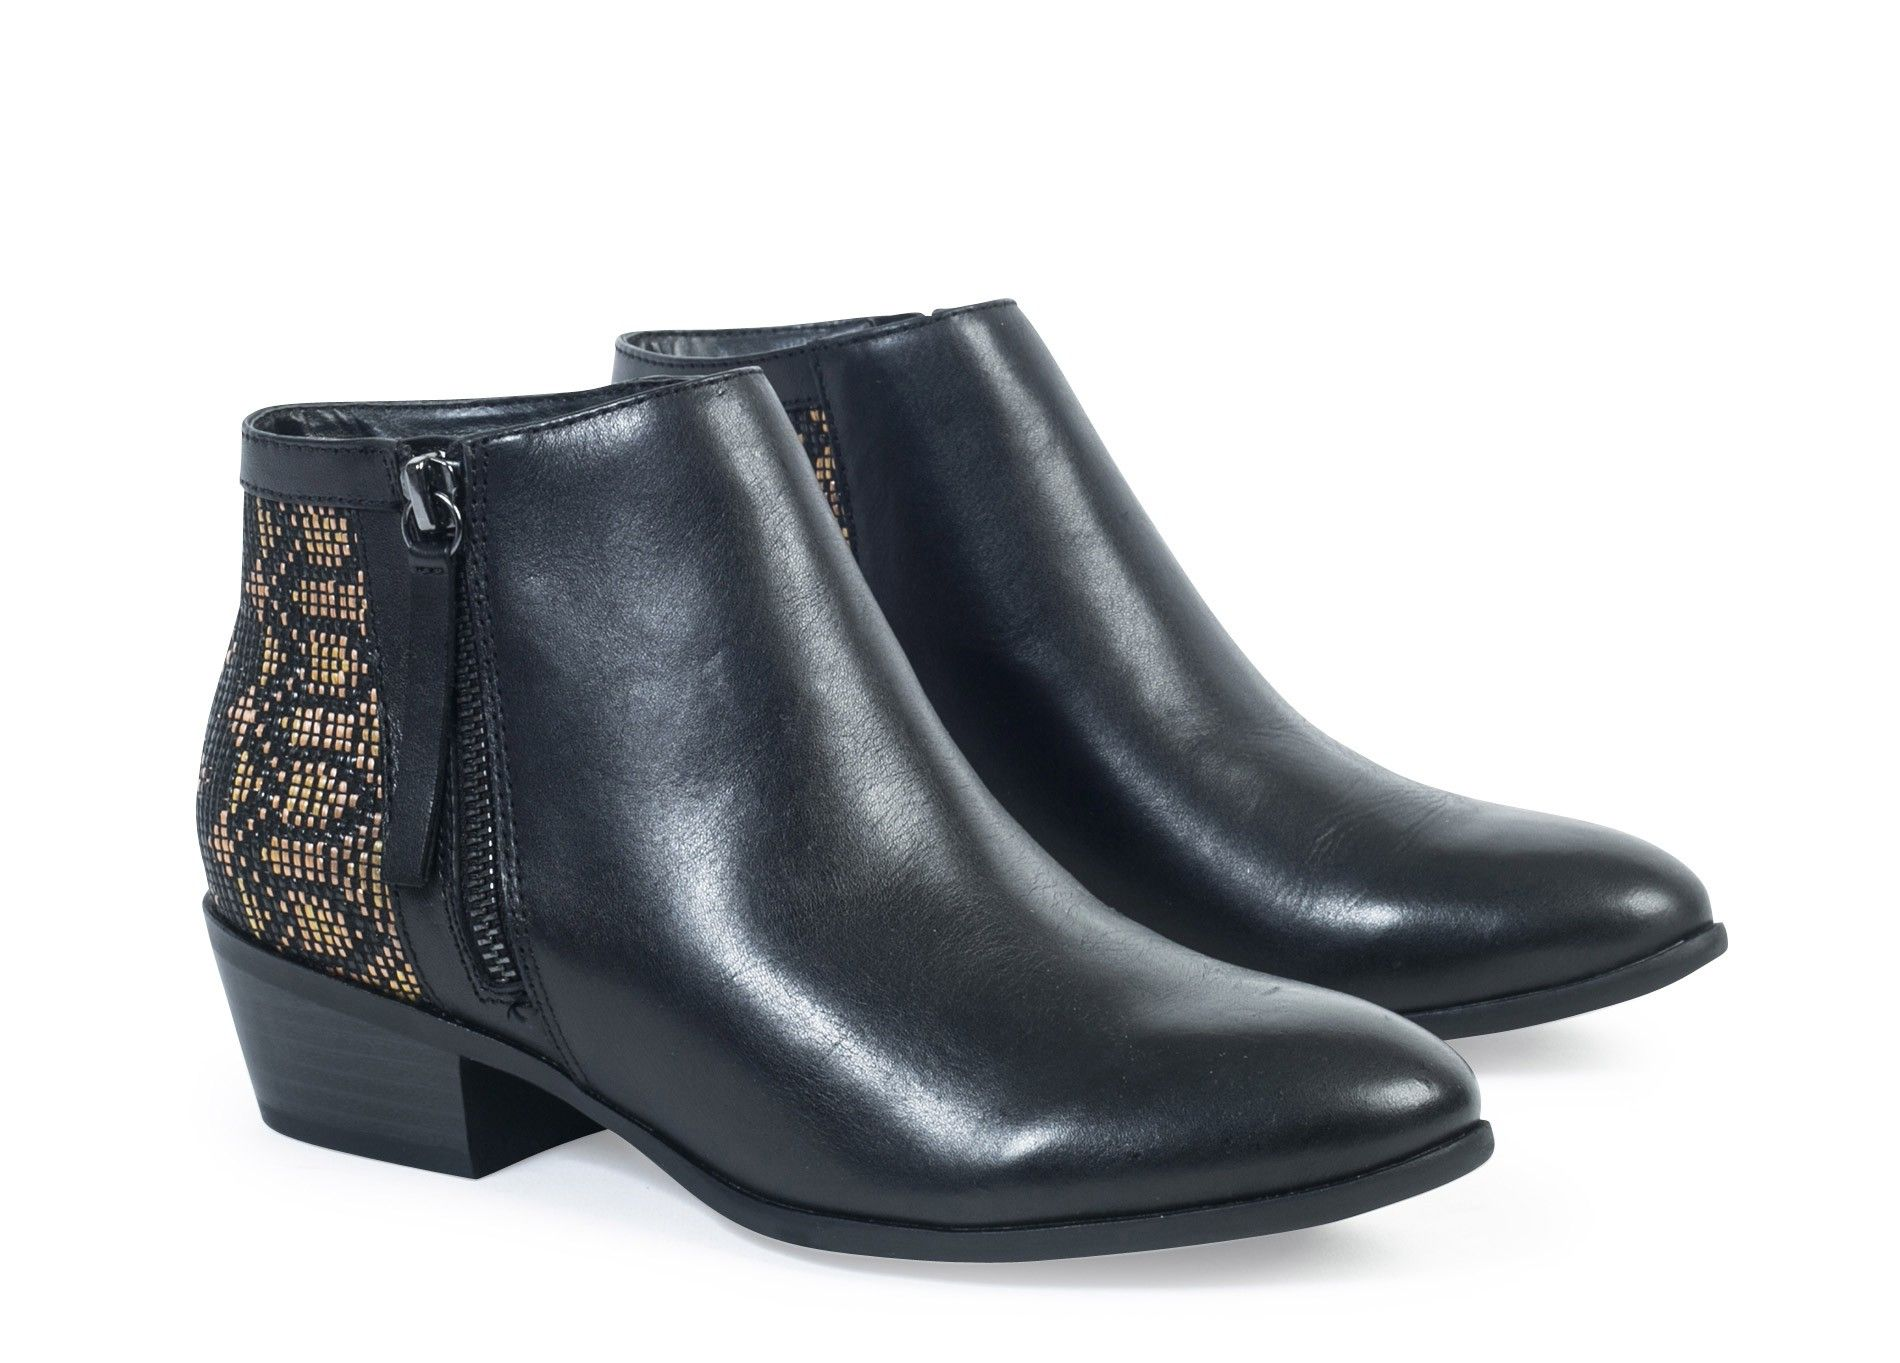 andré | boots lilly | #mode #femme #shoes #chaussure #fashion